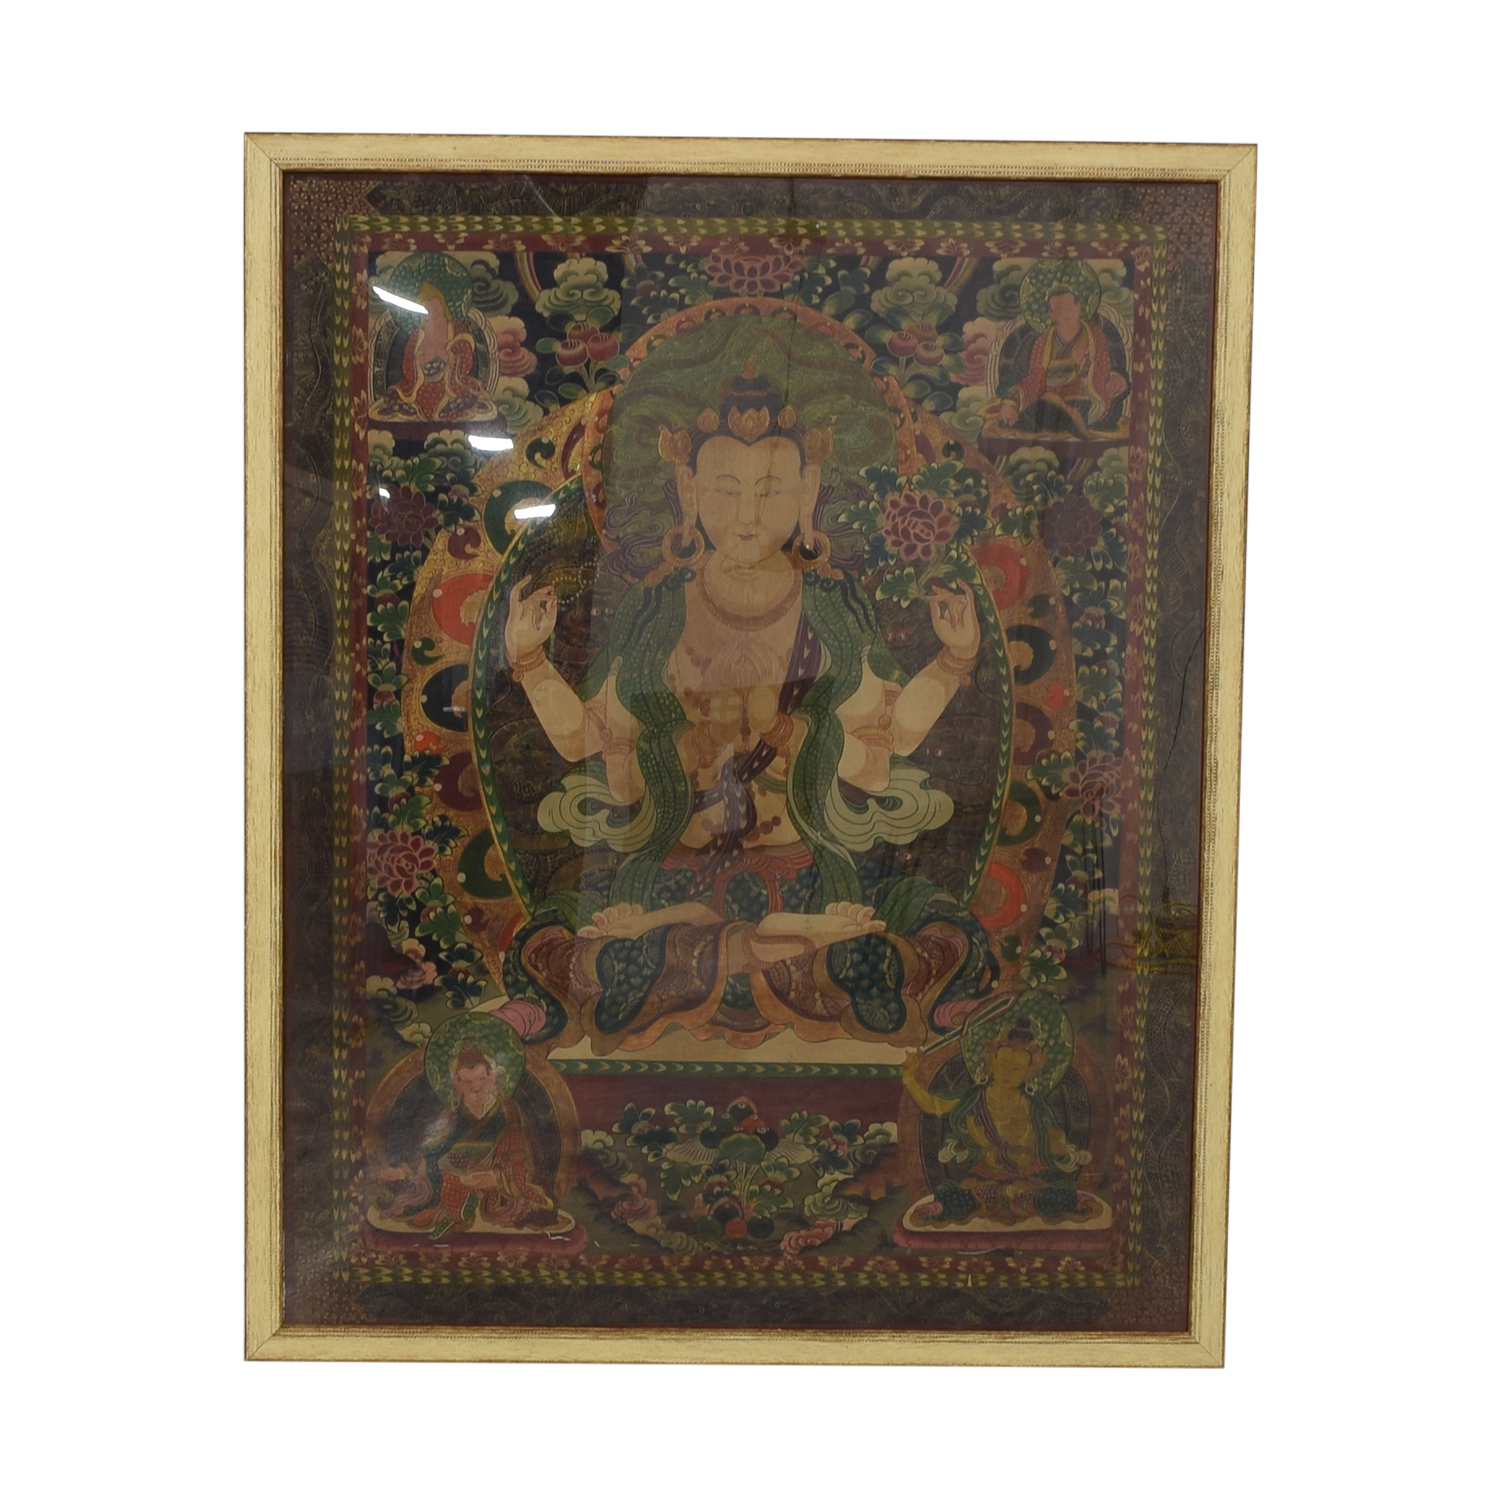 buy Framed Thangka Wall Art